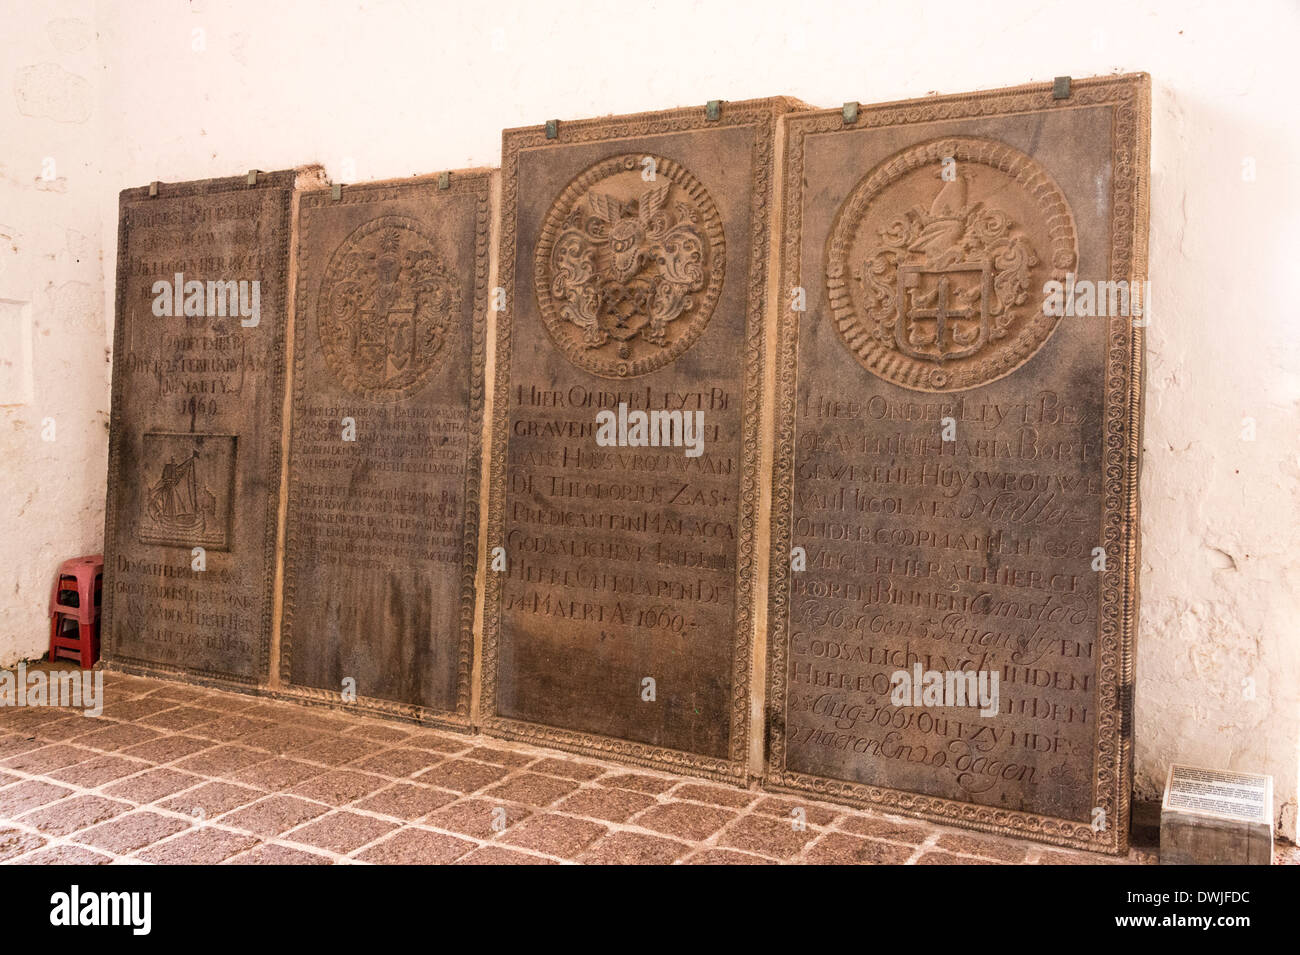 Old Portuguese tombstones in Malacca - Stock Image